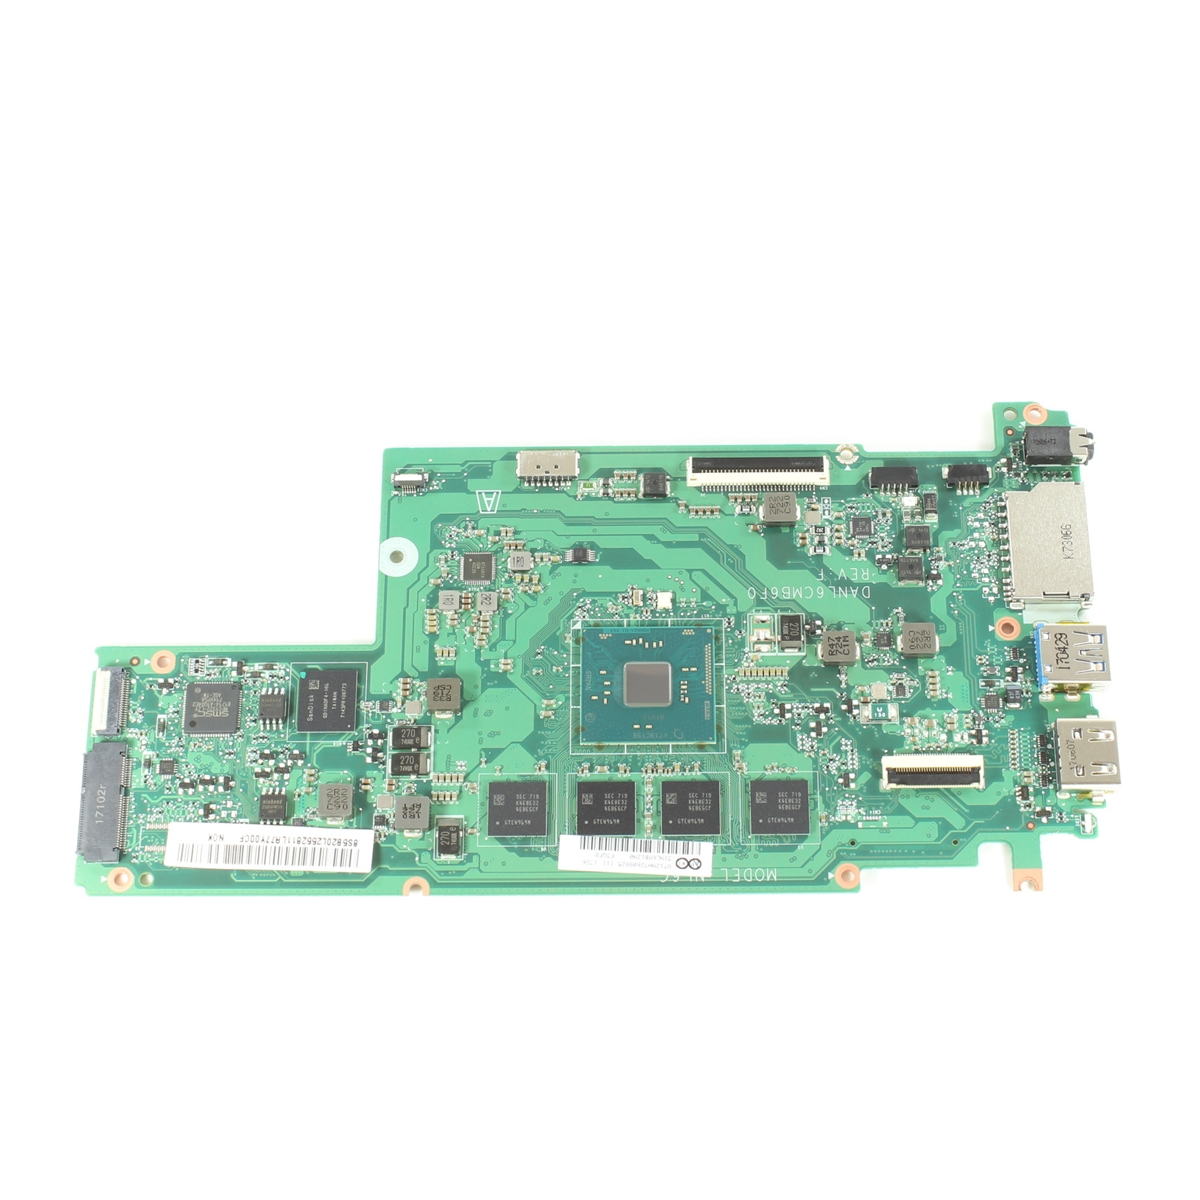 Lenovo 11 N23 Chromebook Motherboard, 4GB, Non-Touch Version